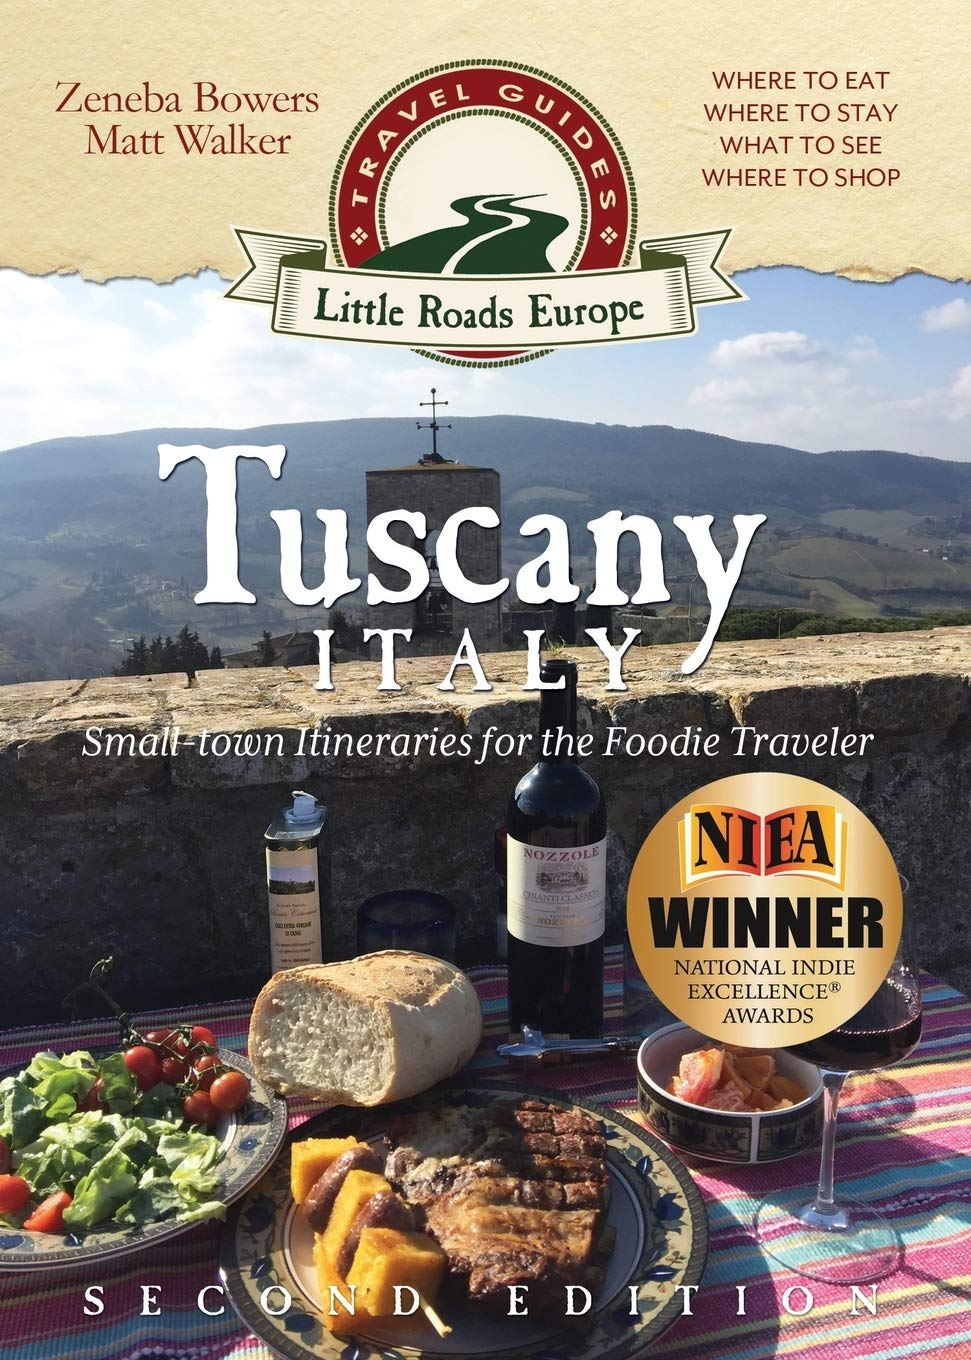 Image OfTuscany, Italy: Small-town Itineraries For The Foodie Traveler